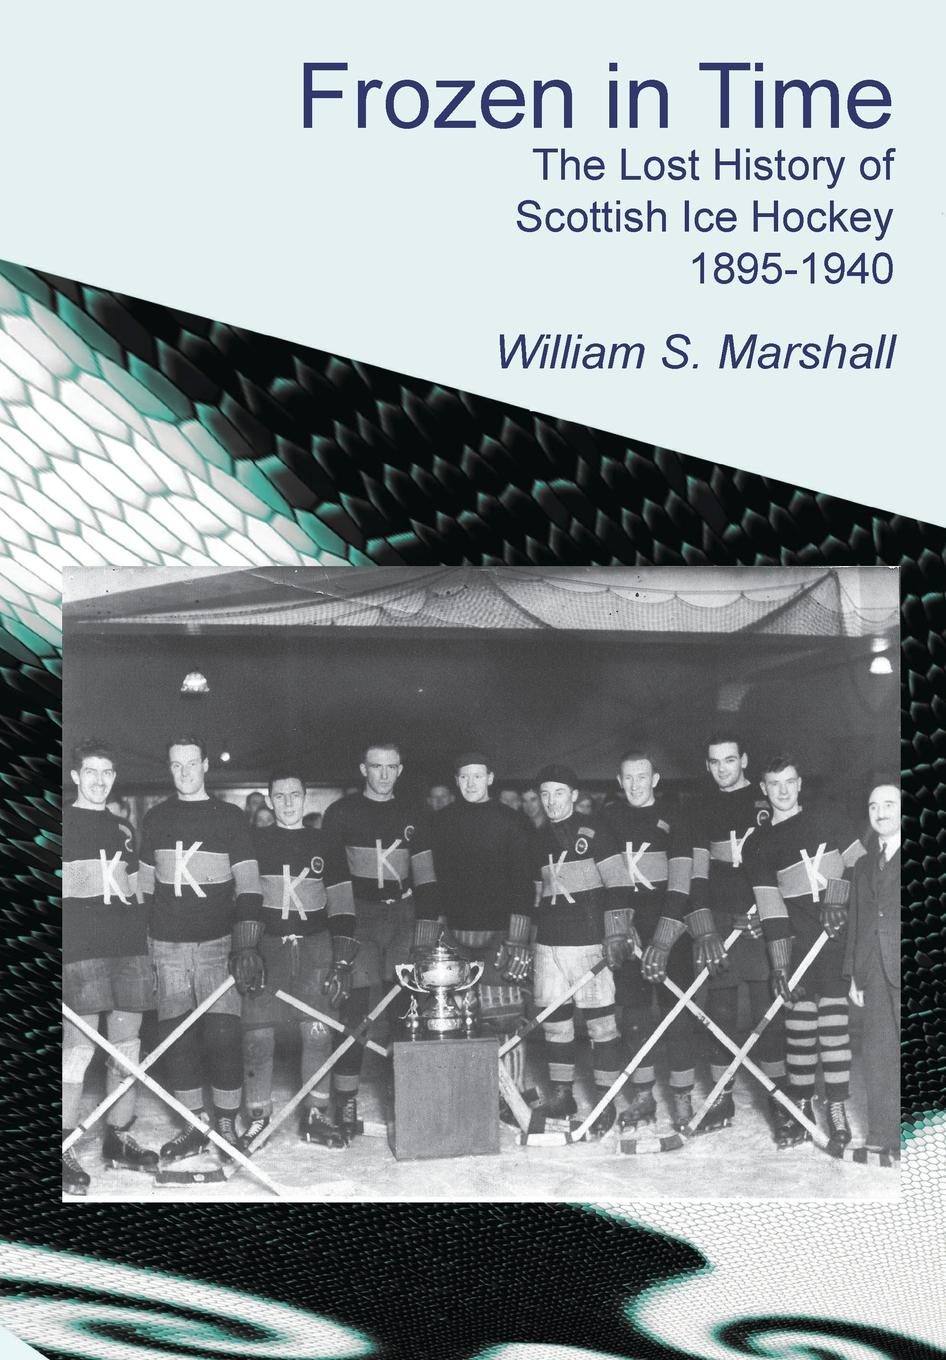 William S. Marshall Frozen in Time. The Lost History of Scottish Ice Hockey 1895-1940